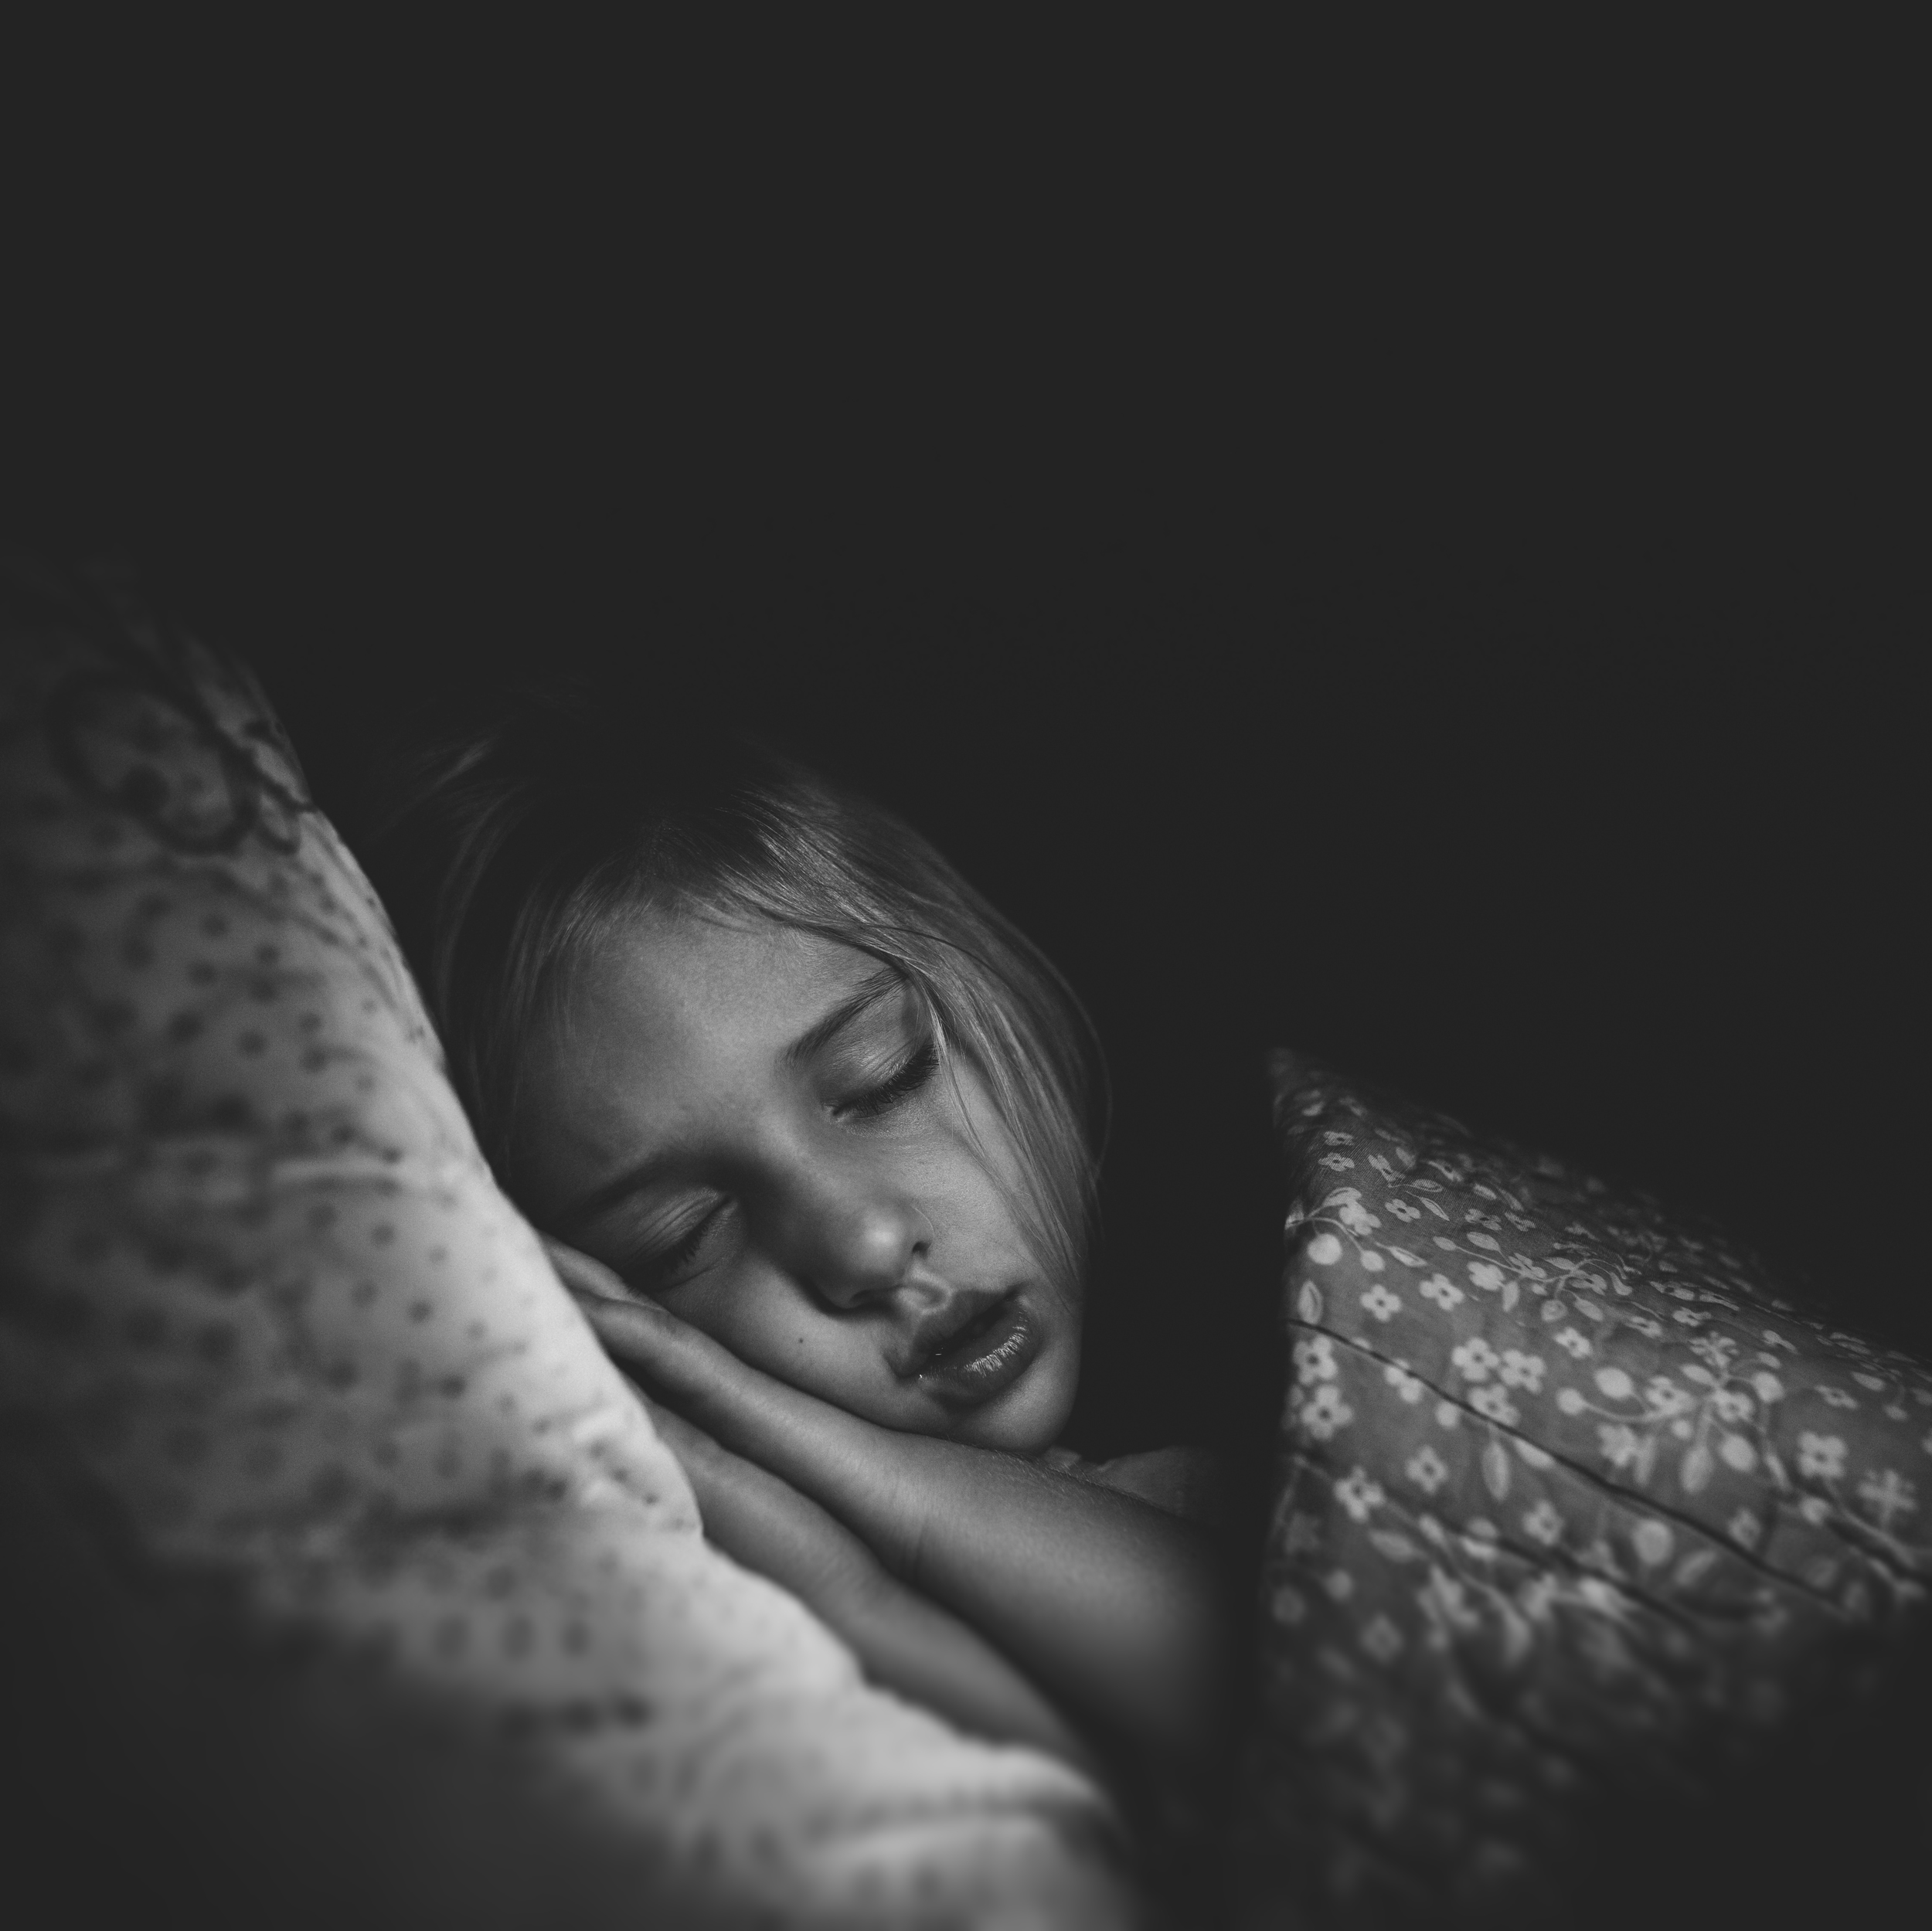 Long-Island-Family-Photographer-Children-Suffolk County - Hello-olivia-photography-sleeping